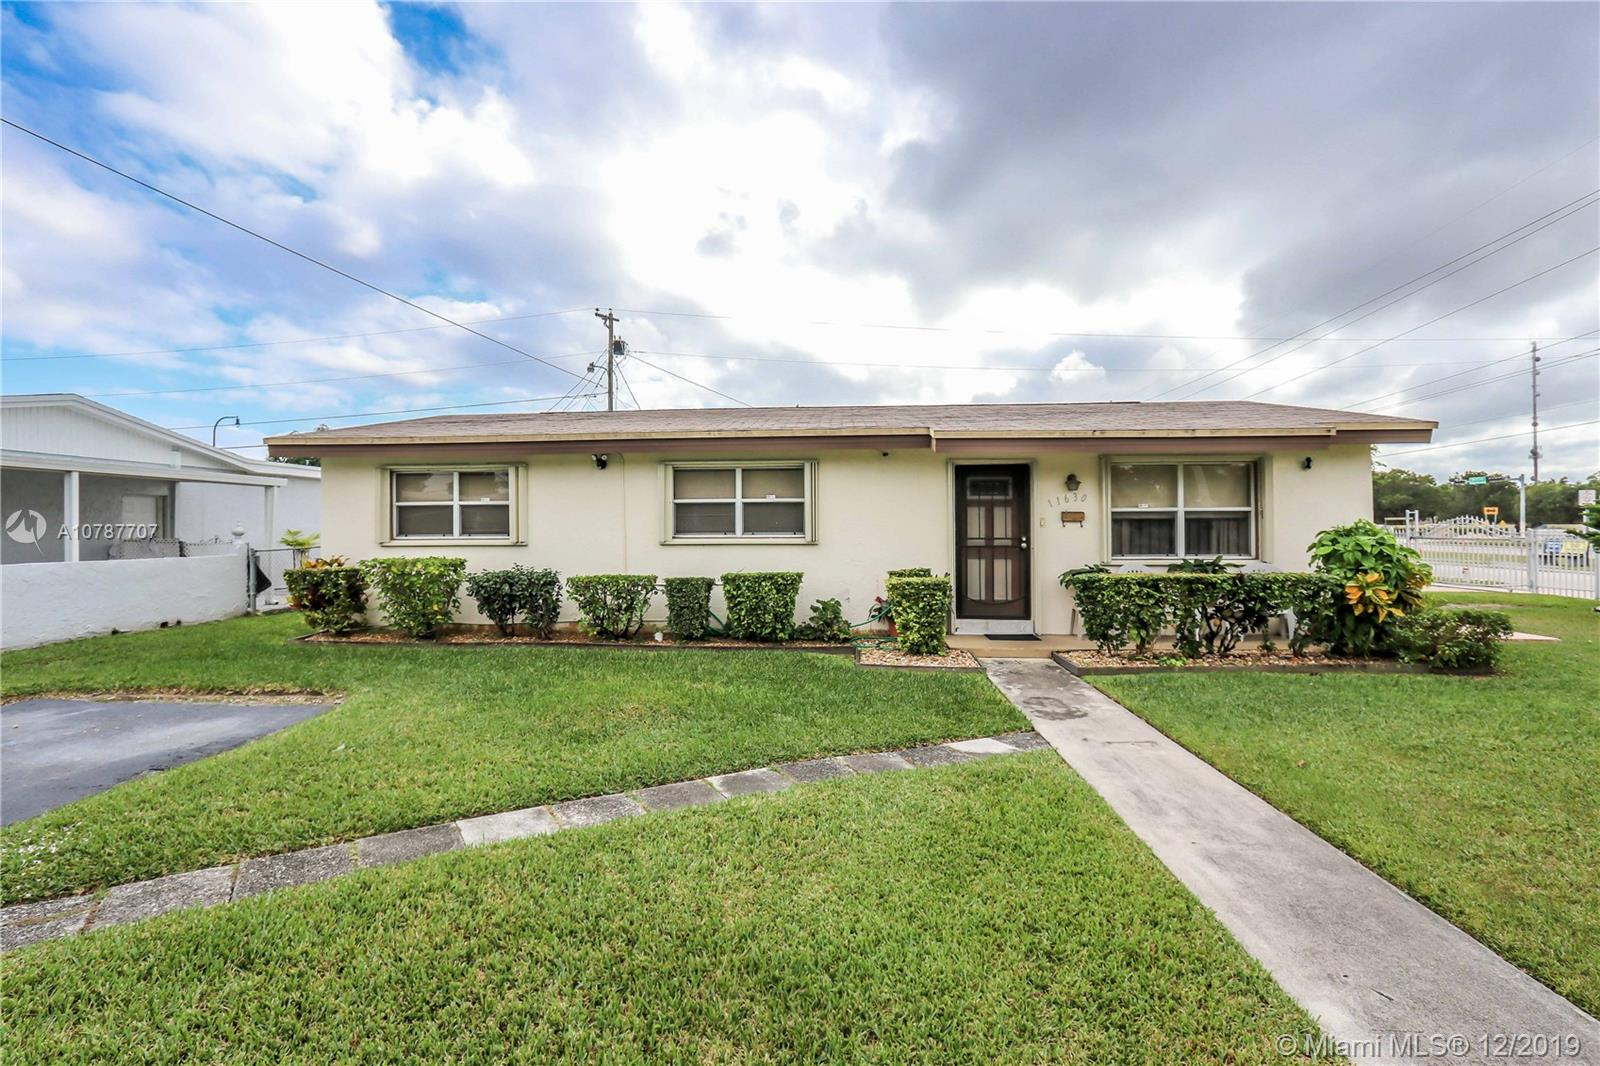 11630  Pinkston Dr  For Sale A10787707, FL